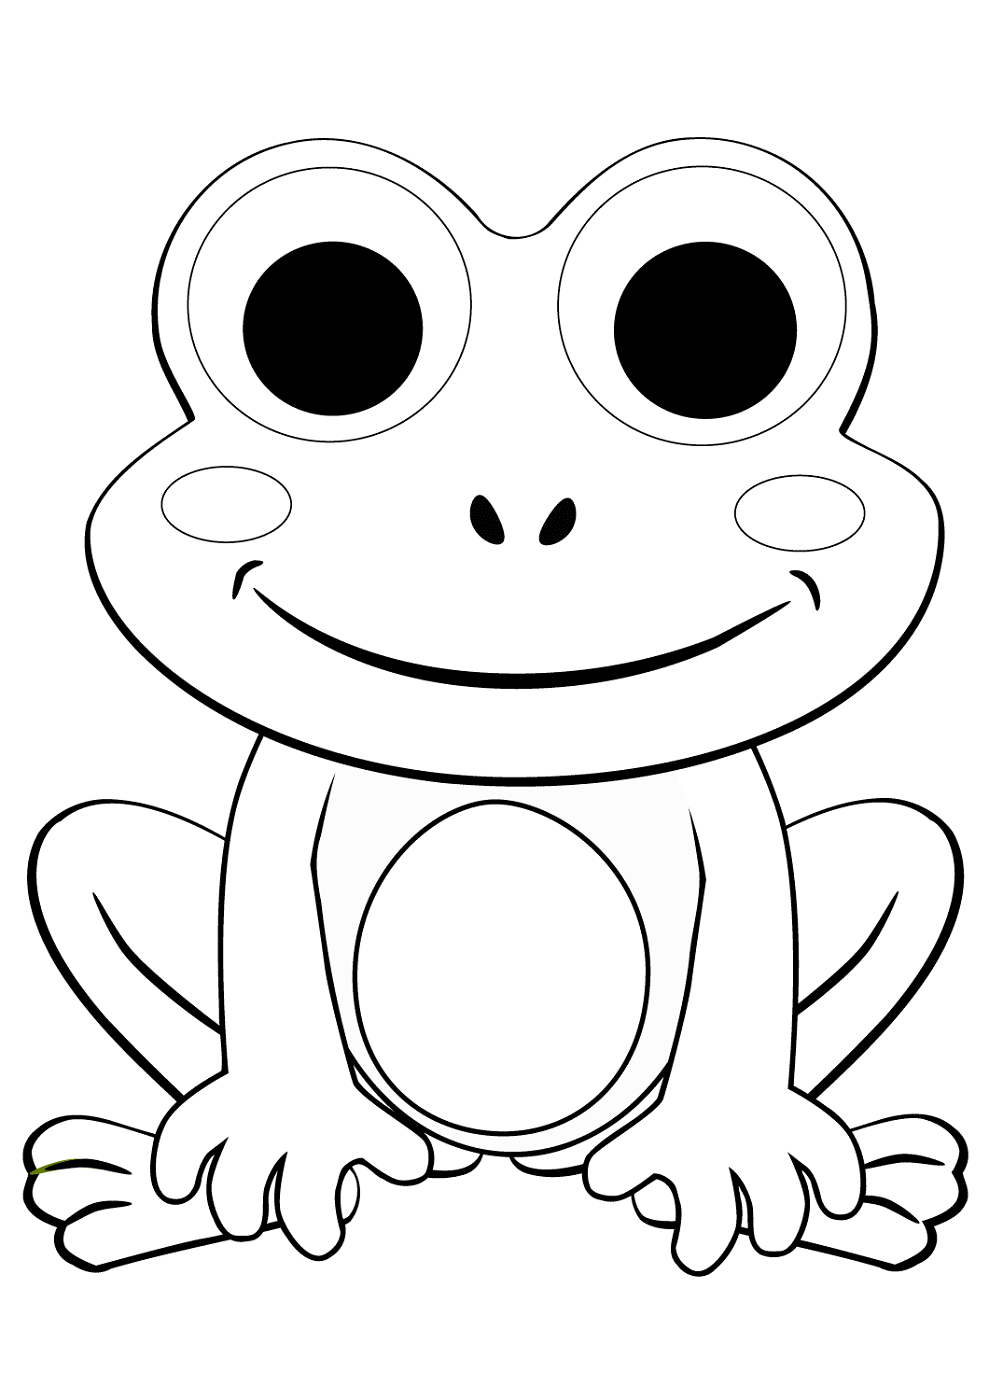 frog to color free printable frog coloring pages for kids frog to color